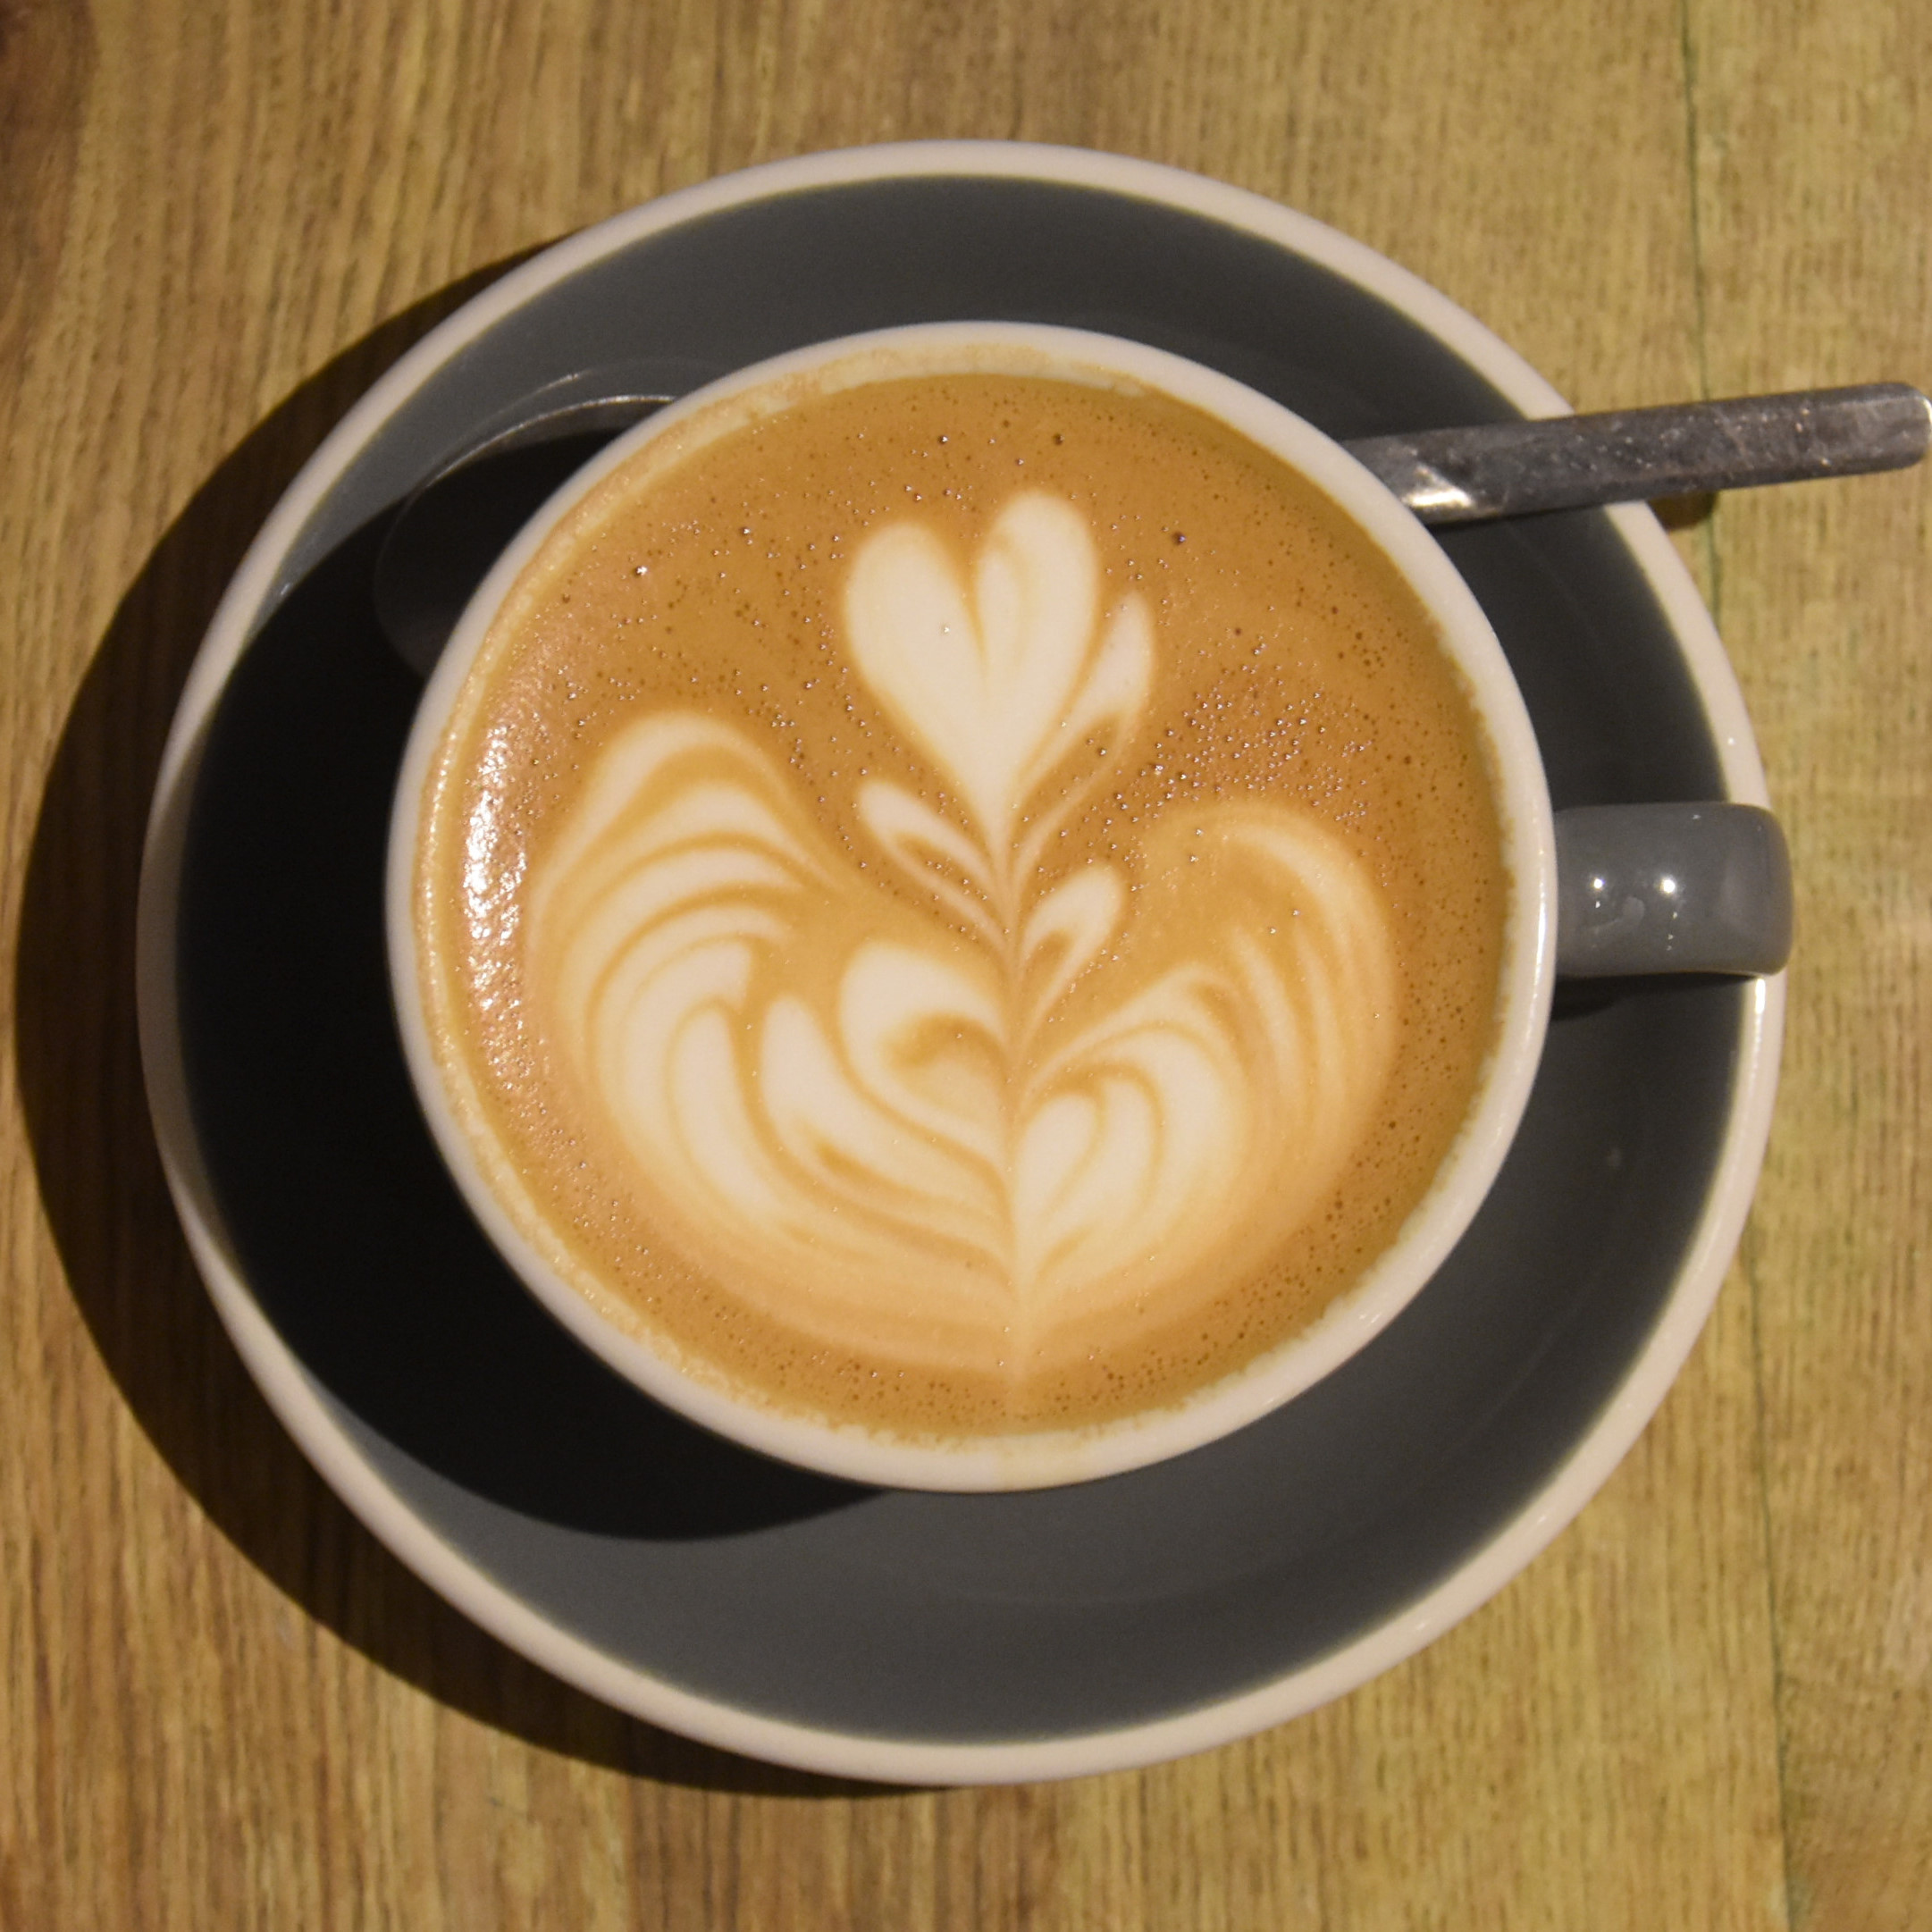 The lovely latte art in my decaf flat white at Lundenwic, made with Square Mile's seasonal decaf espresso.